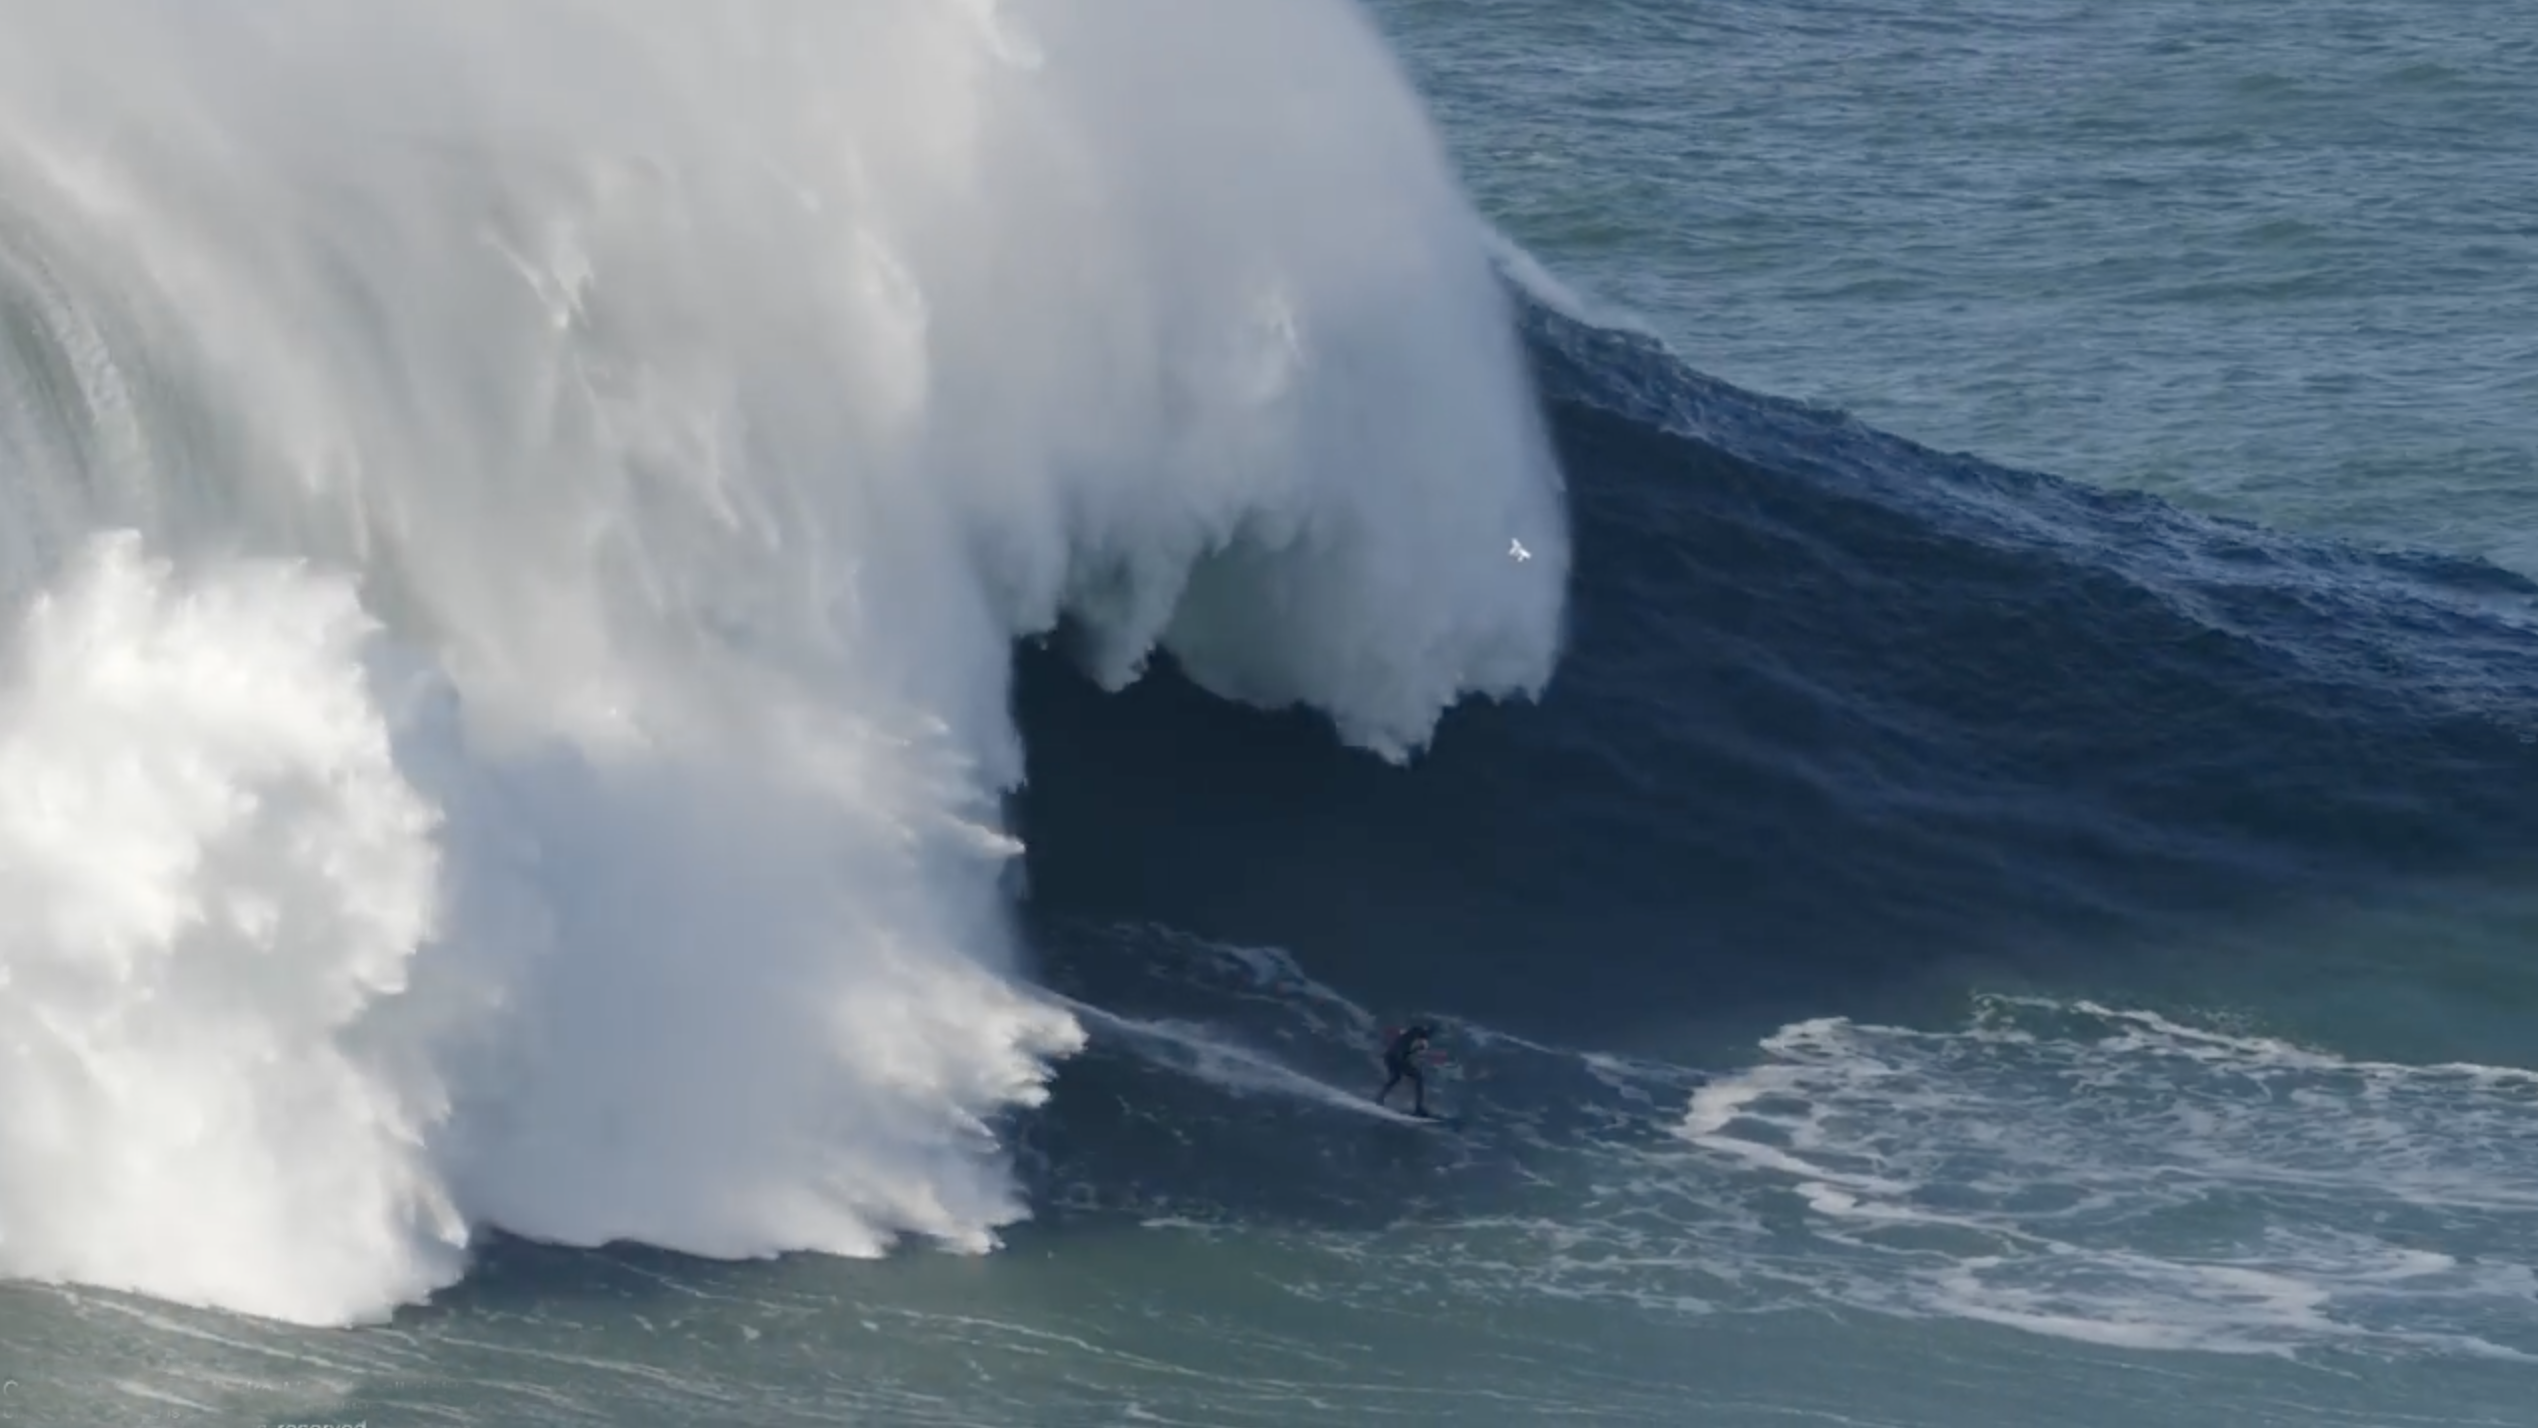 Largest wave ever surfed: Tom Butler sets record at Nazare (video)